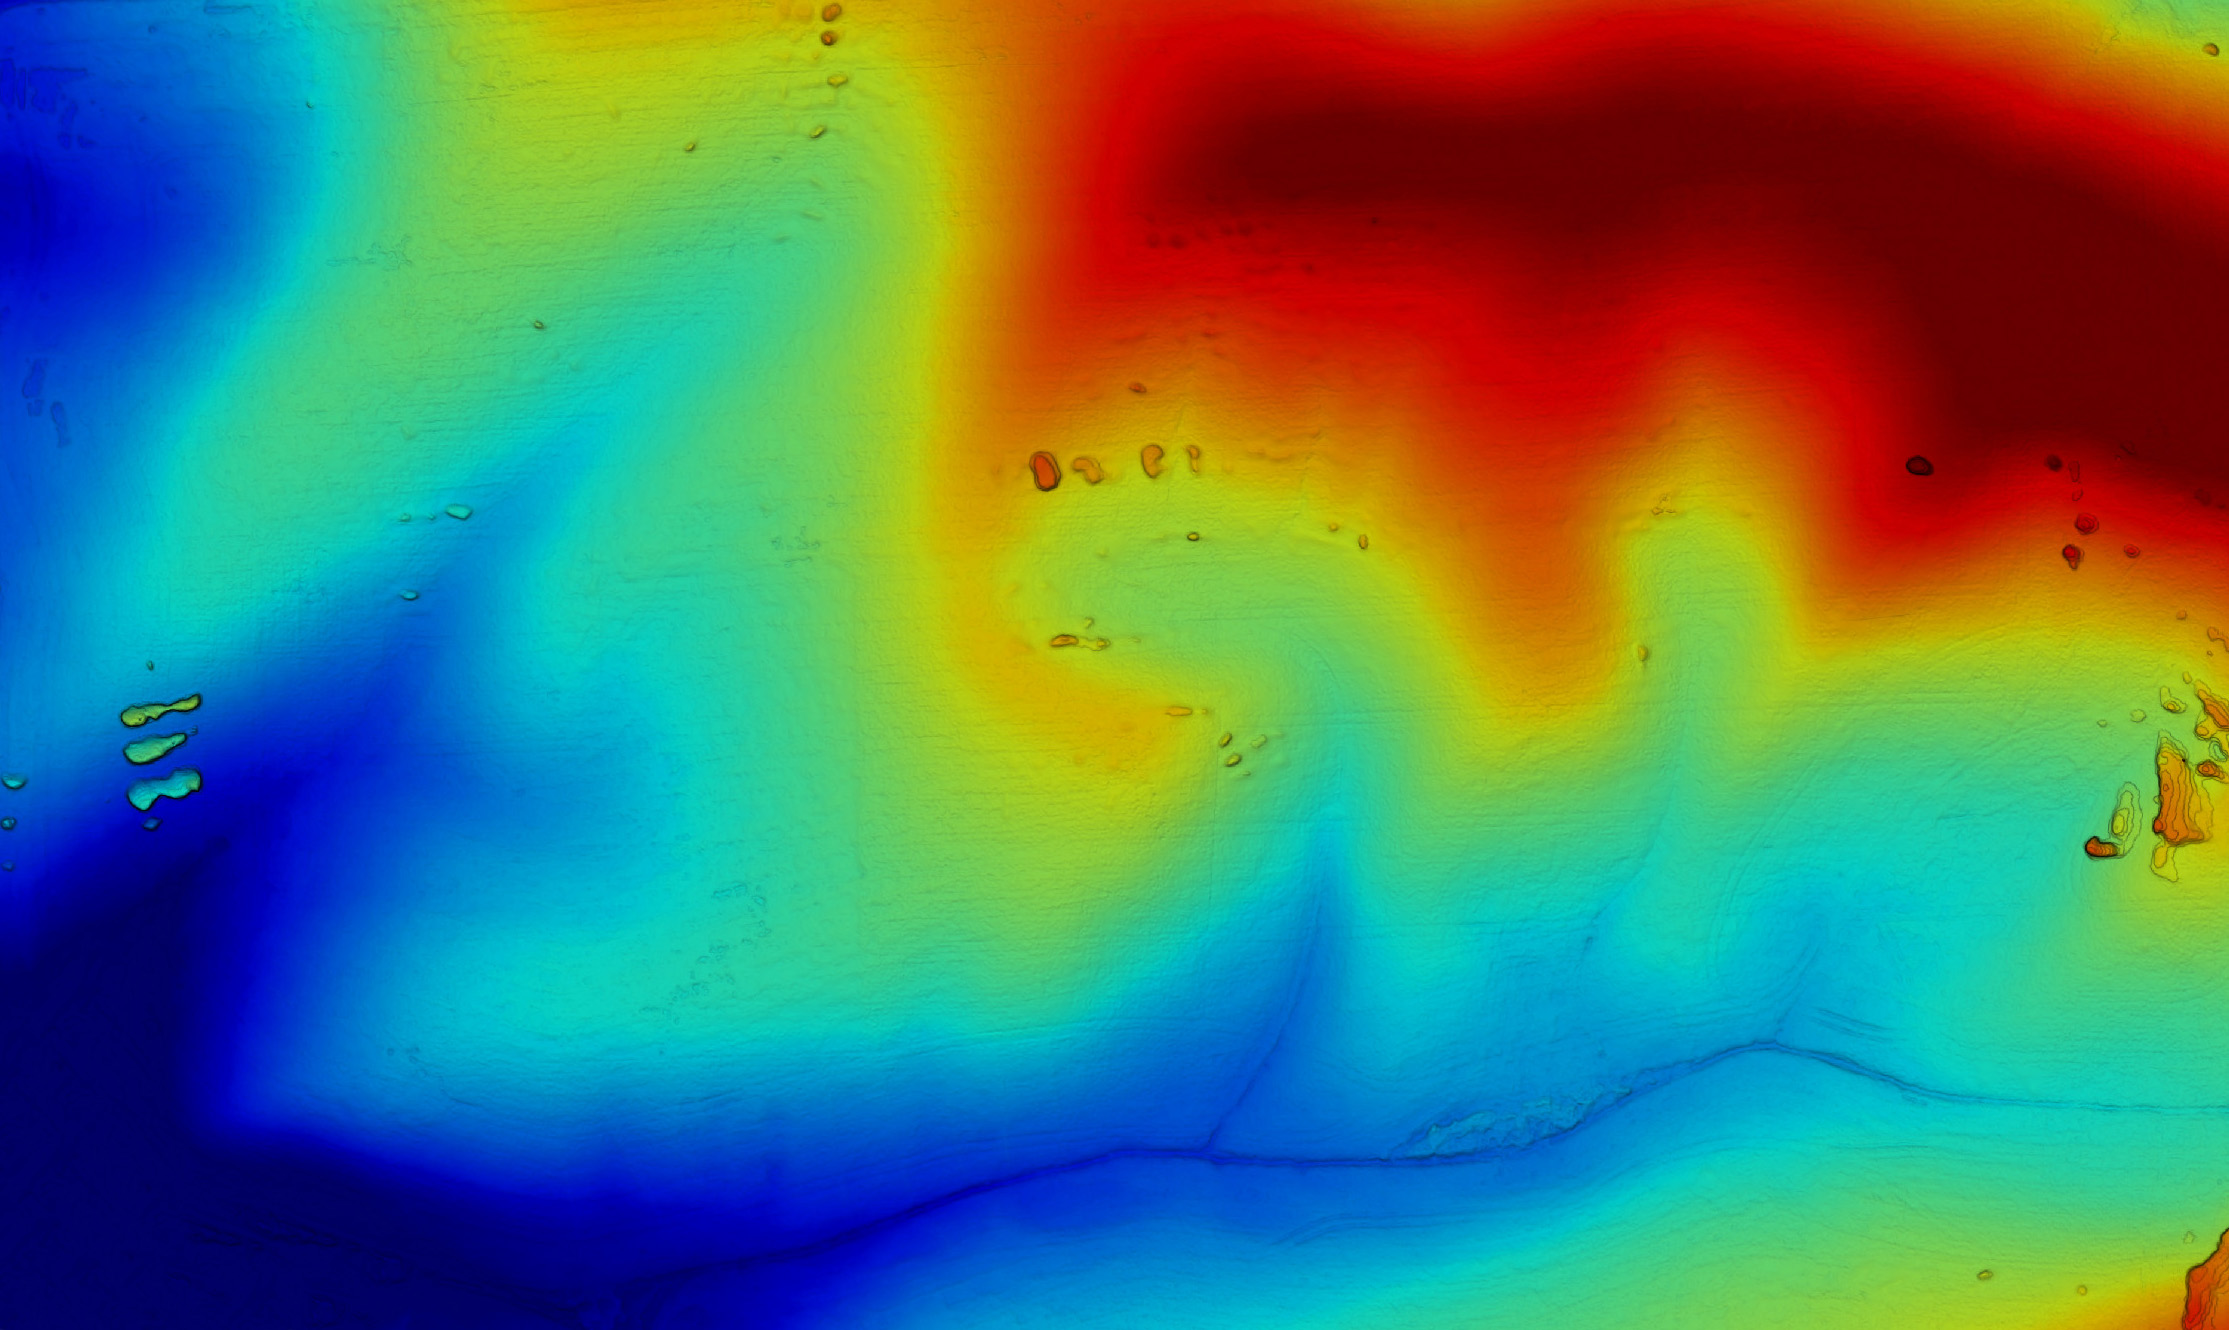 Elevation Mapping - With the drone option, we can display the relative elevation within the mapped area. The blue represents lower areas and the red higher.